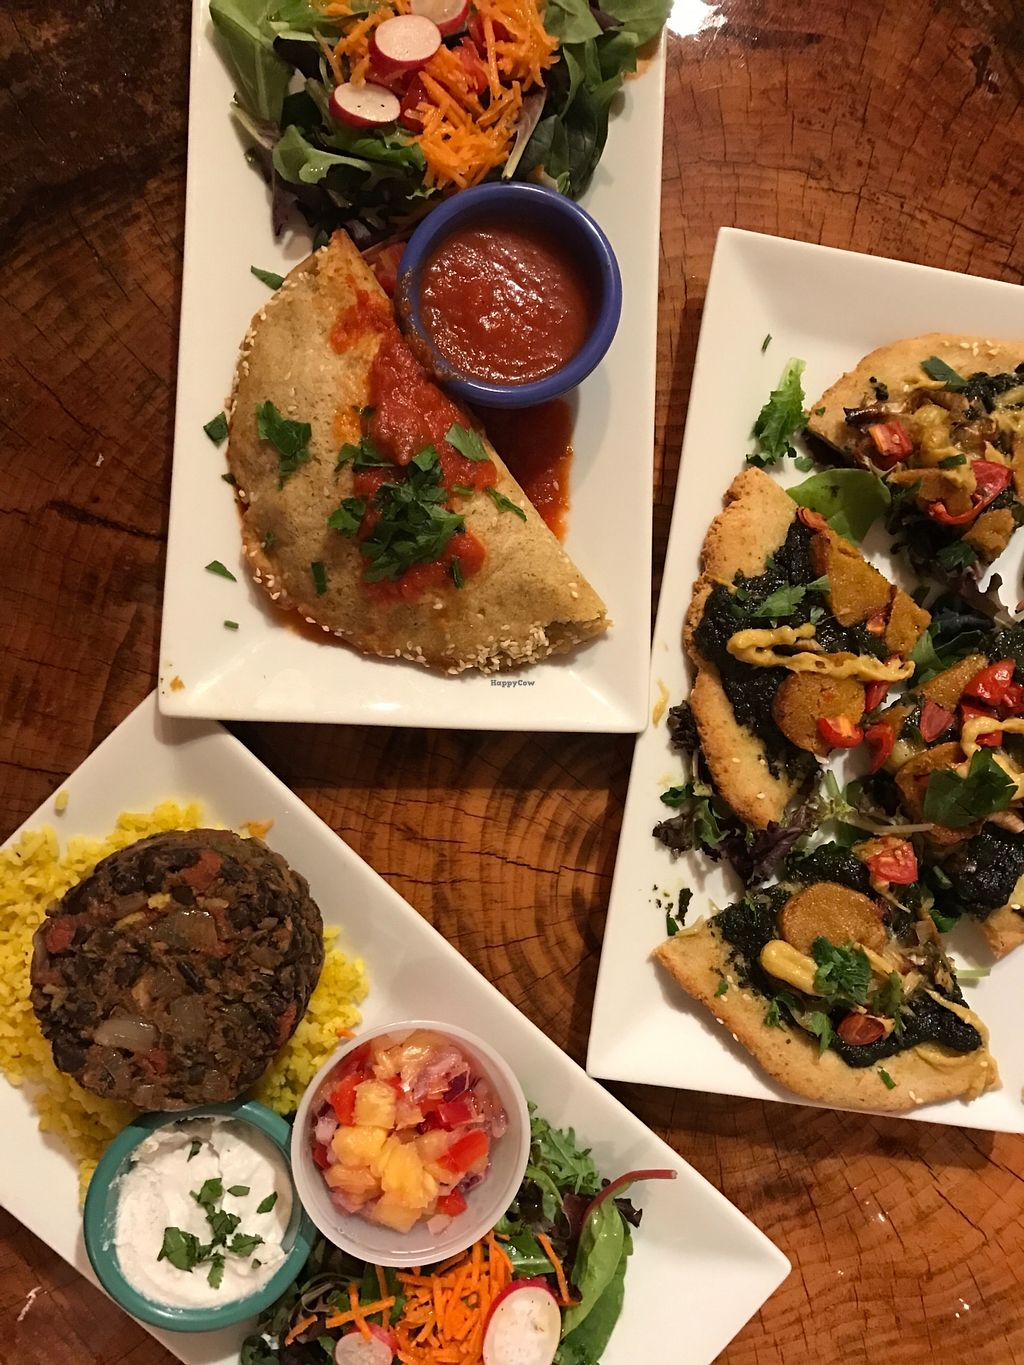 """Photo of Shayna B's By The Sea  by <a href=""""/members/profile/Juliettevf"""">Juliettevf</a> <br/>Calzone, Spinach Pesto Pizza, Black Bean Borrito Bowl (special) <br/> November 10, 2017  - <a href='/contact/abuse/image/104454/323730'>Report</a>"""